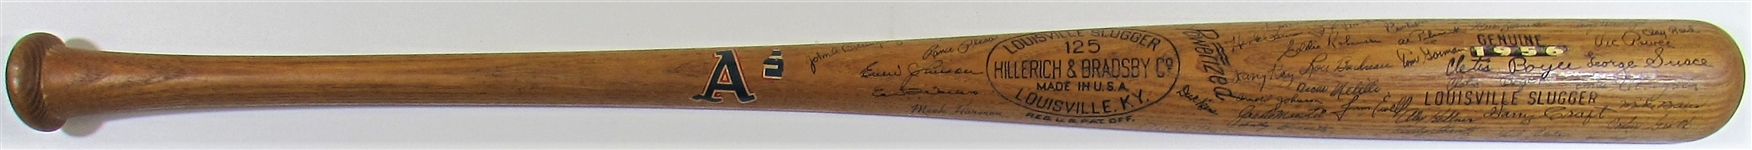 Cletis Boyer 1956 Team Signed Kansas City Athletics Bat